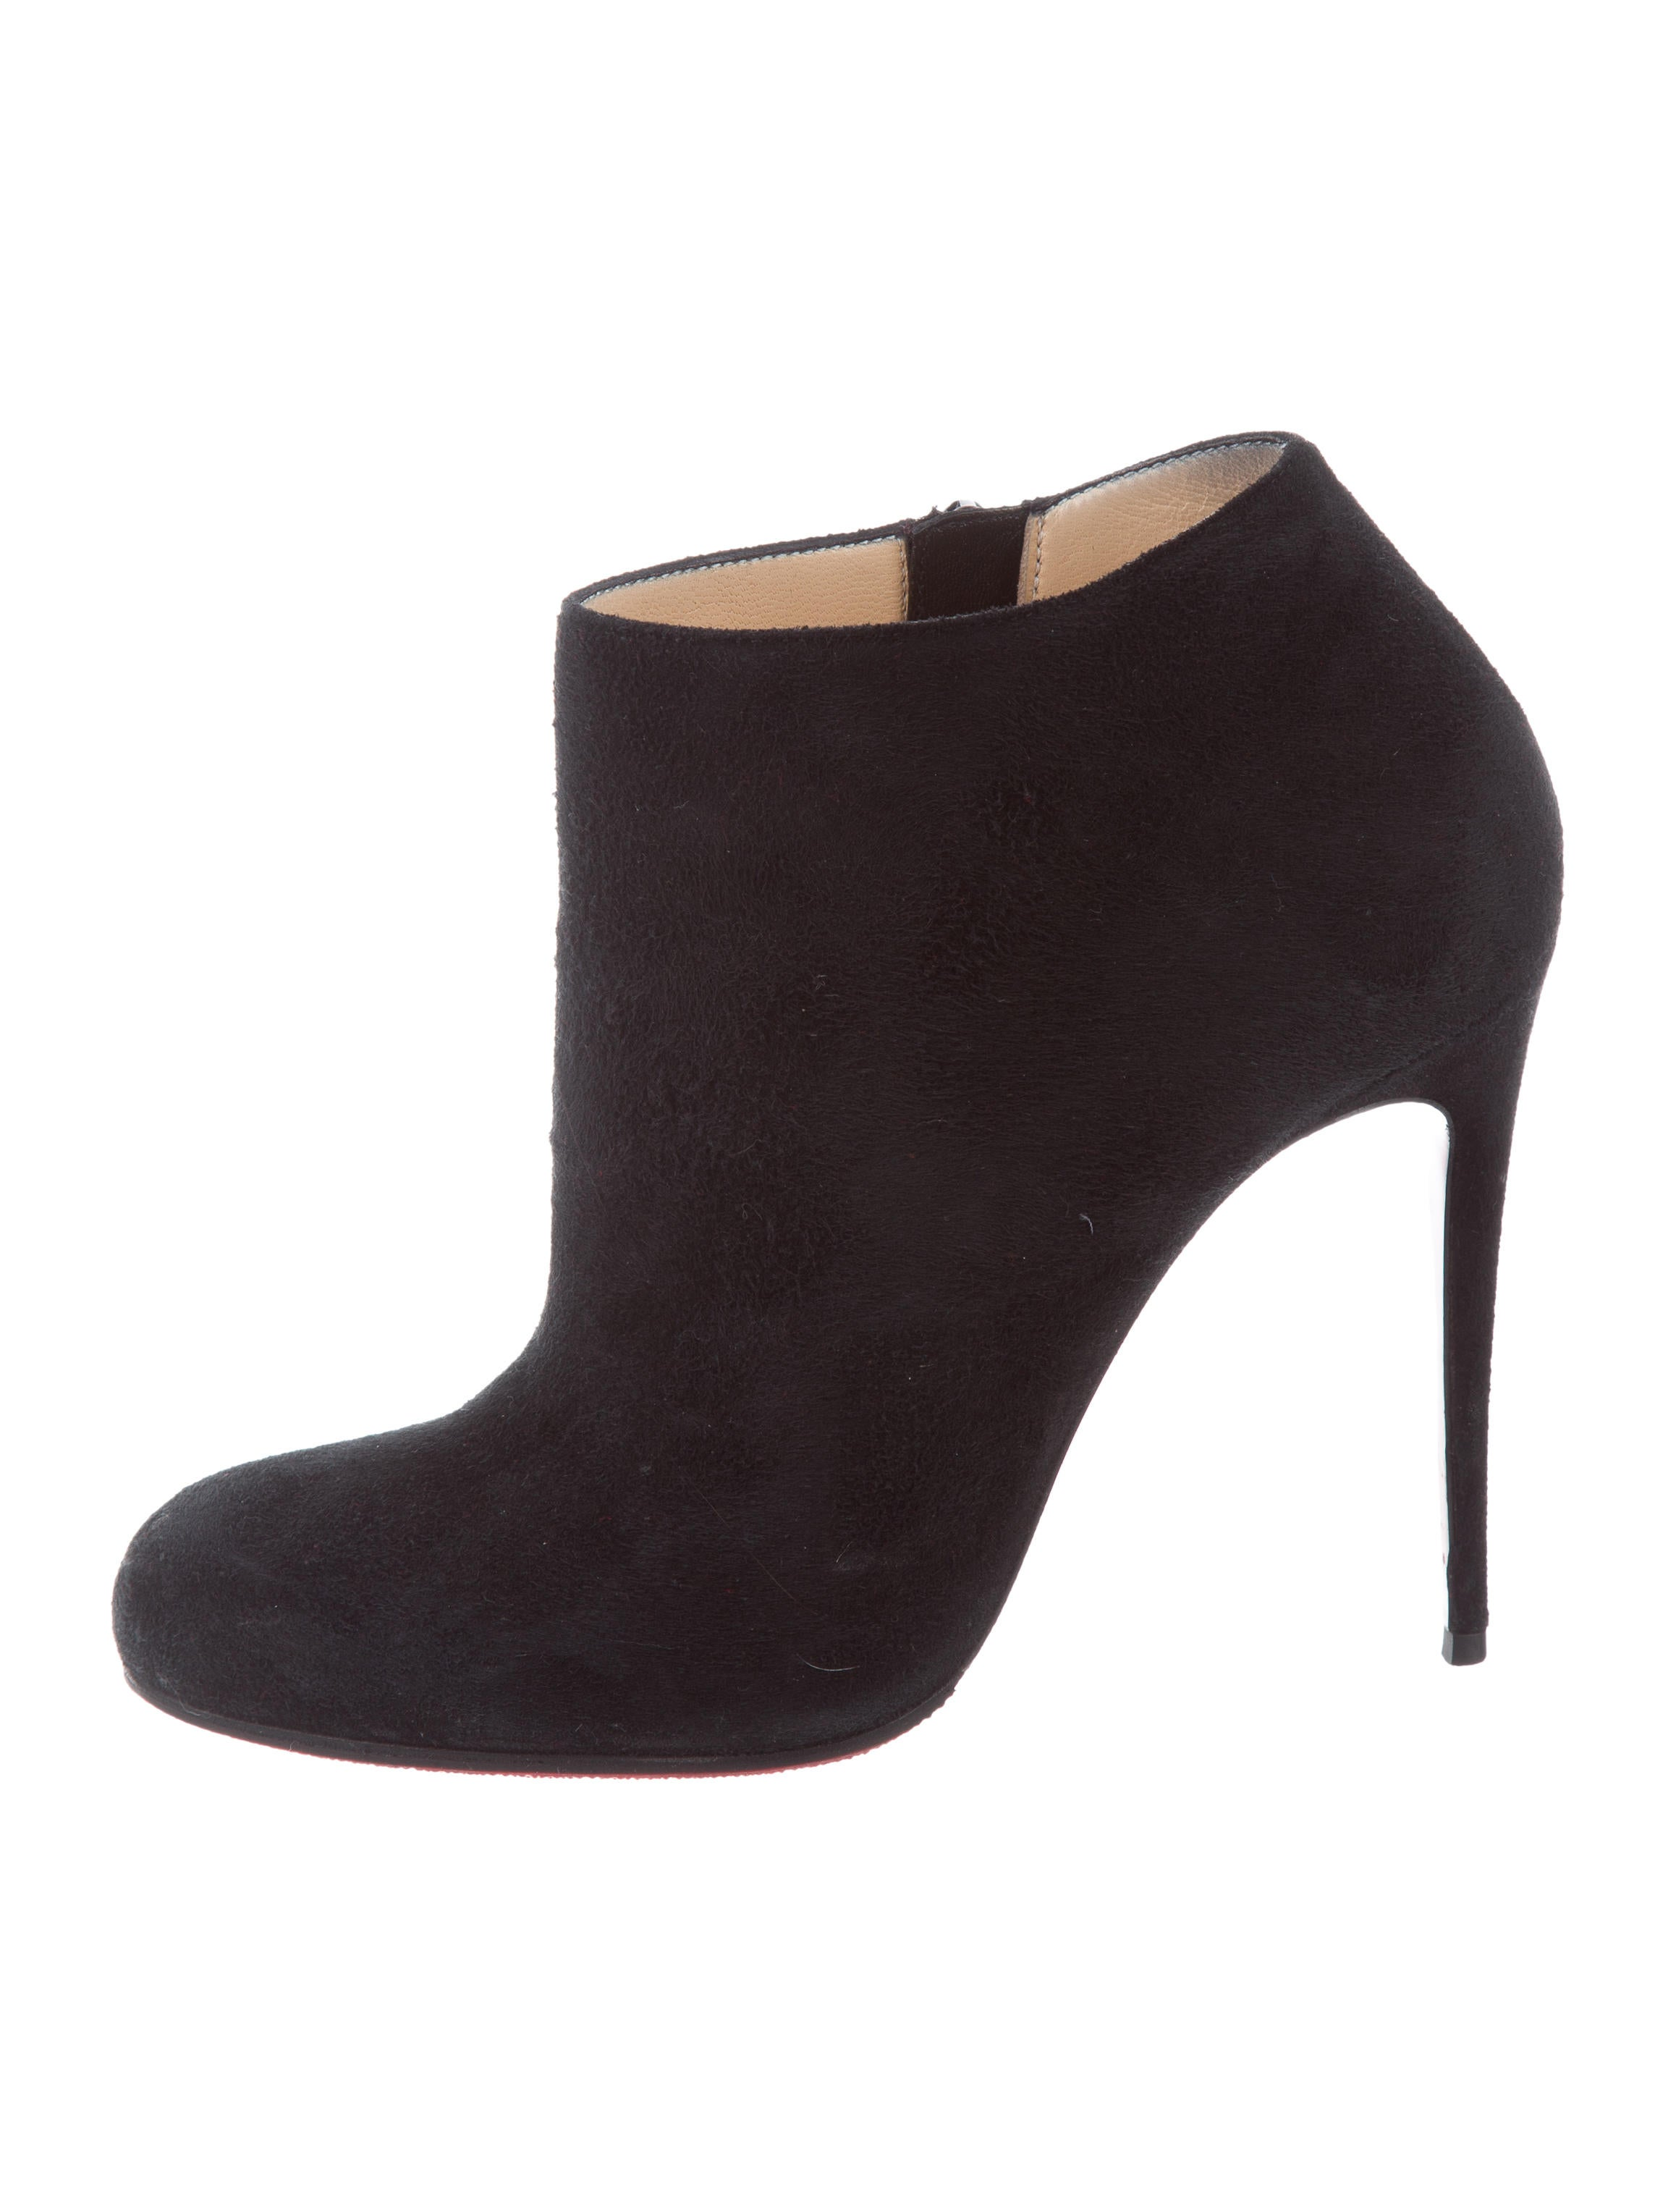 52704247ae0 wholesale christian louboutin suede bellissima ankle booties value ...